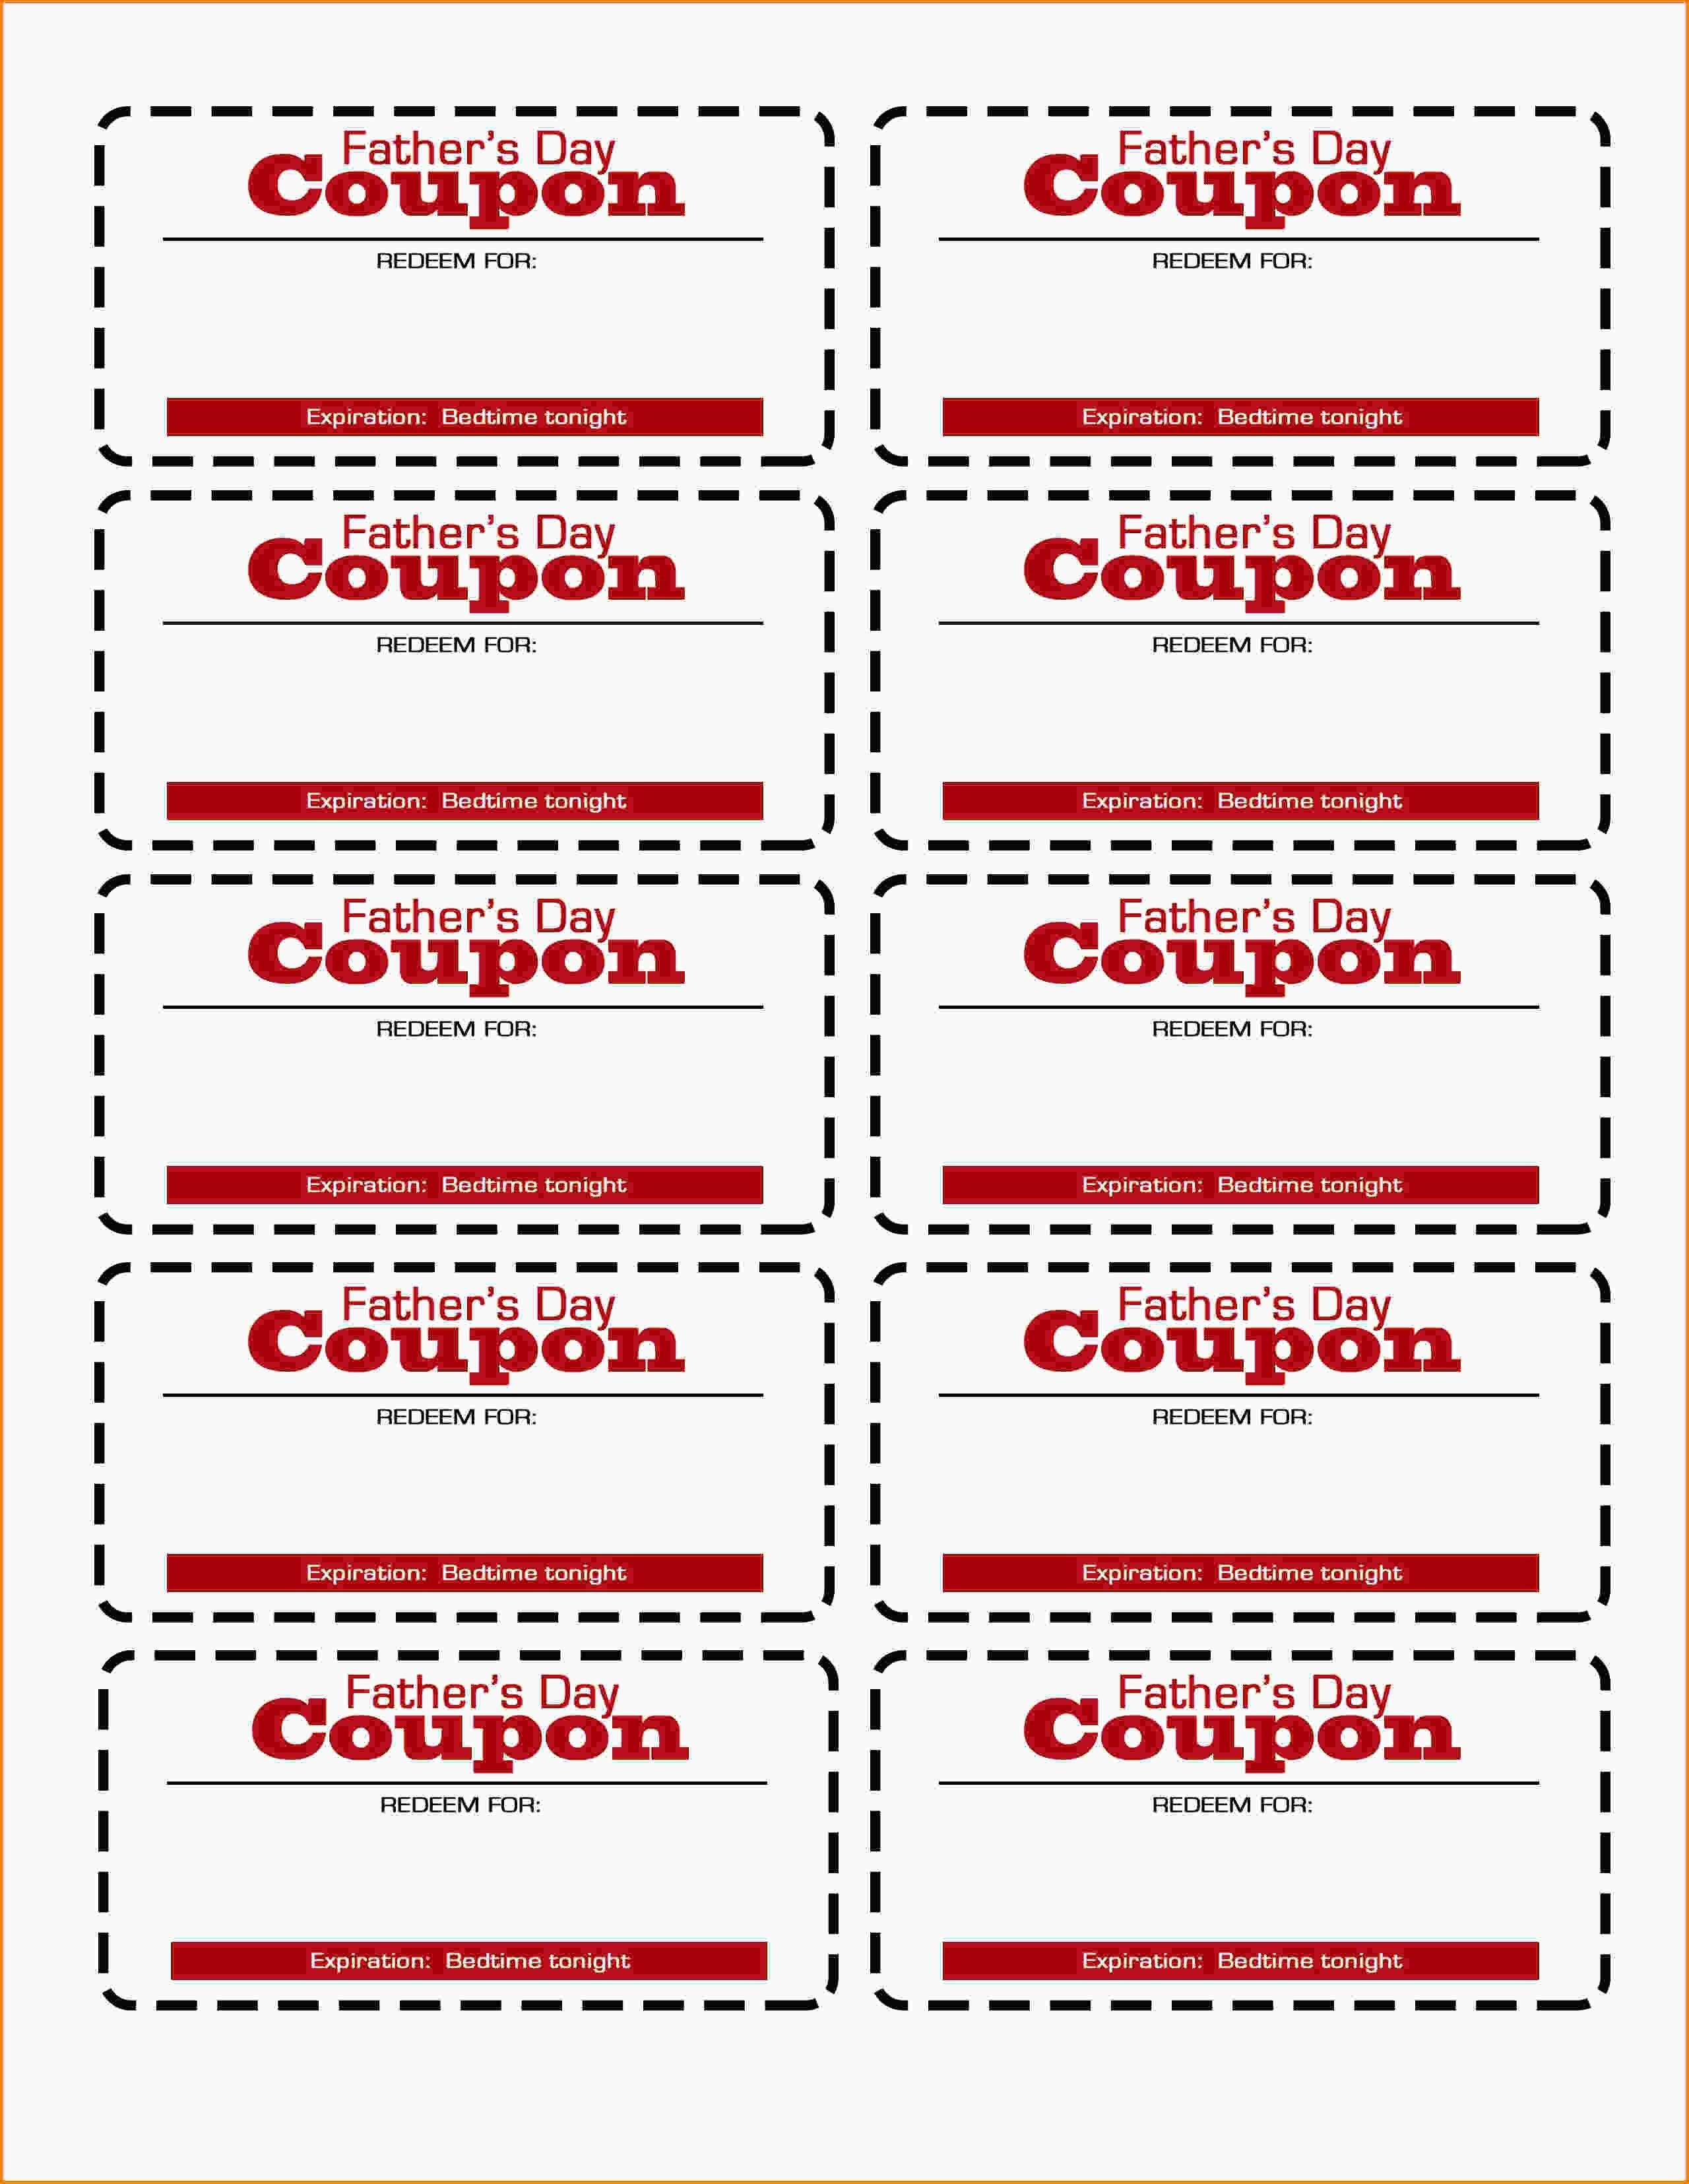 Father's Day Coupon Printable! | Flourish | Free Resources For Pro - Free Printable Coupon Templates